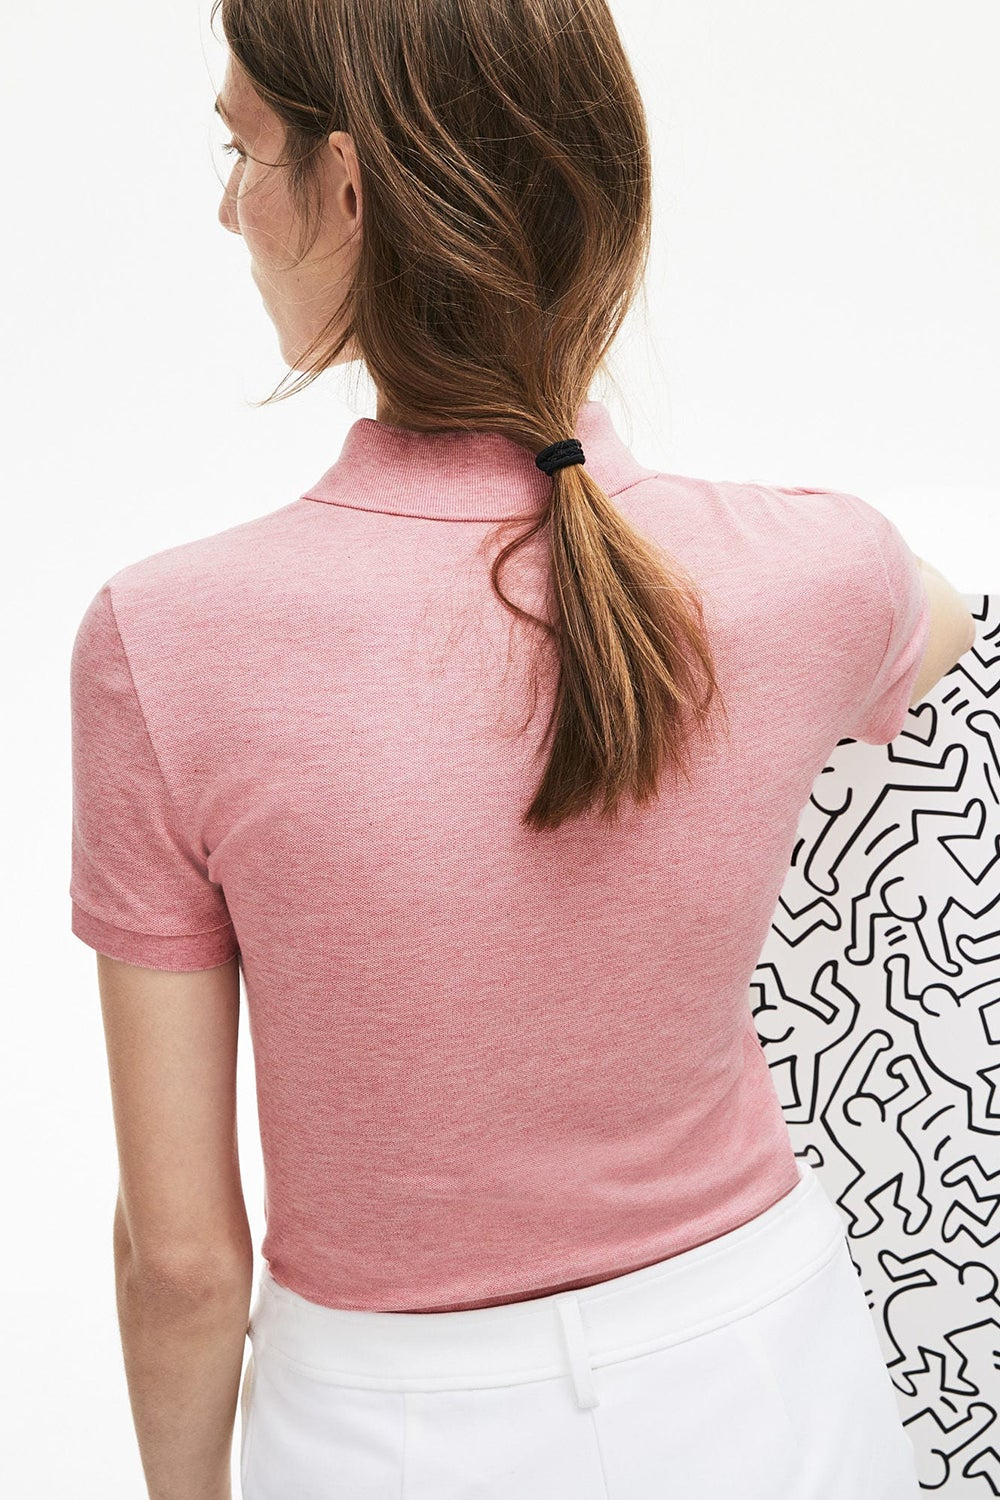 Lacoste Keith Haring Polo Shirt